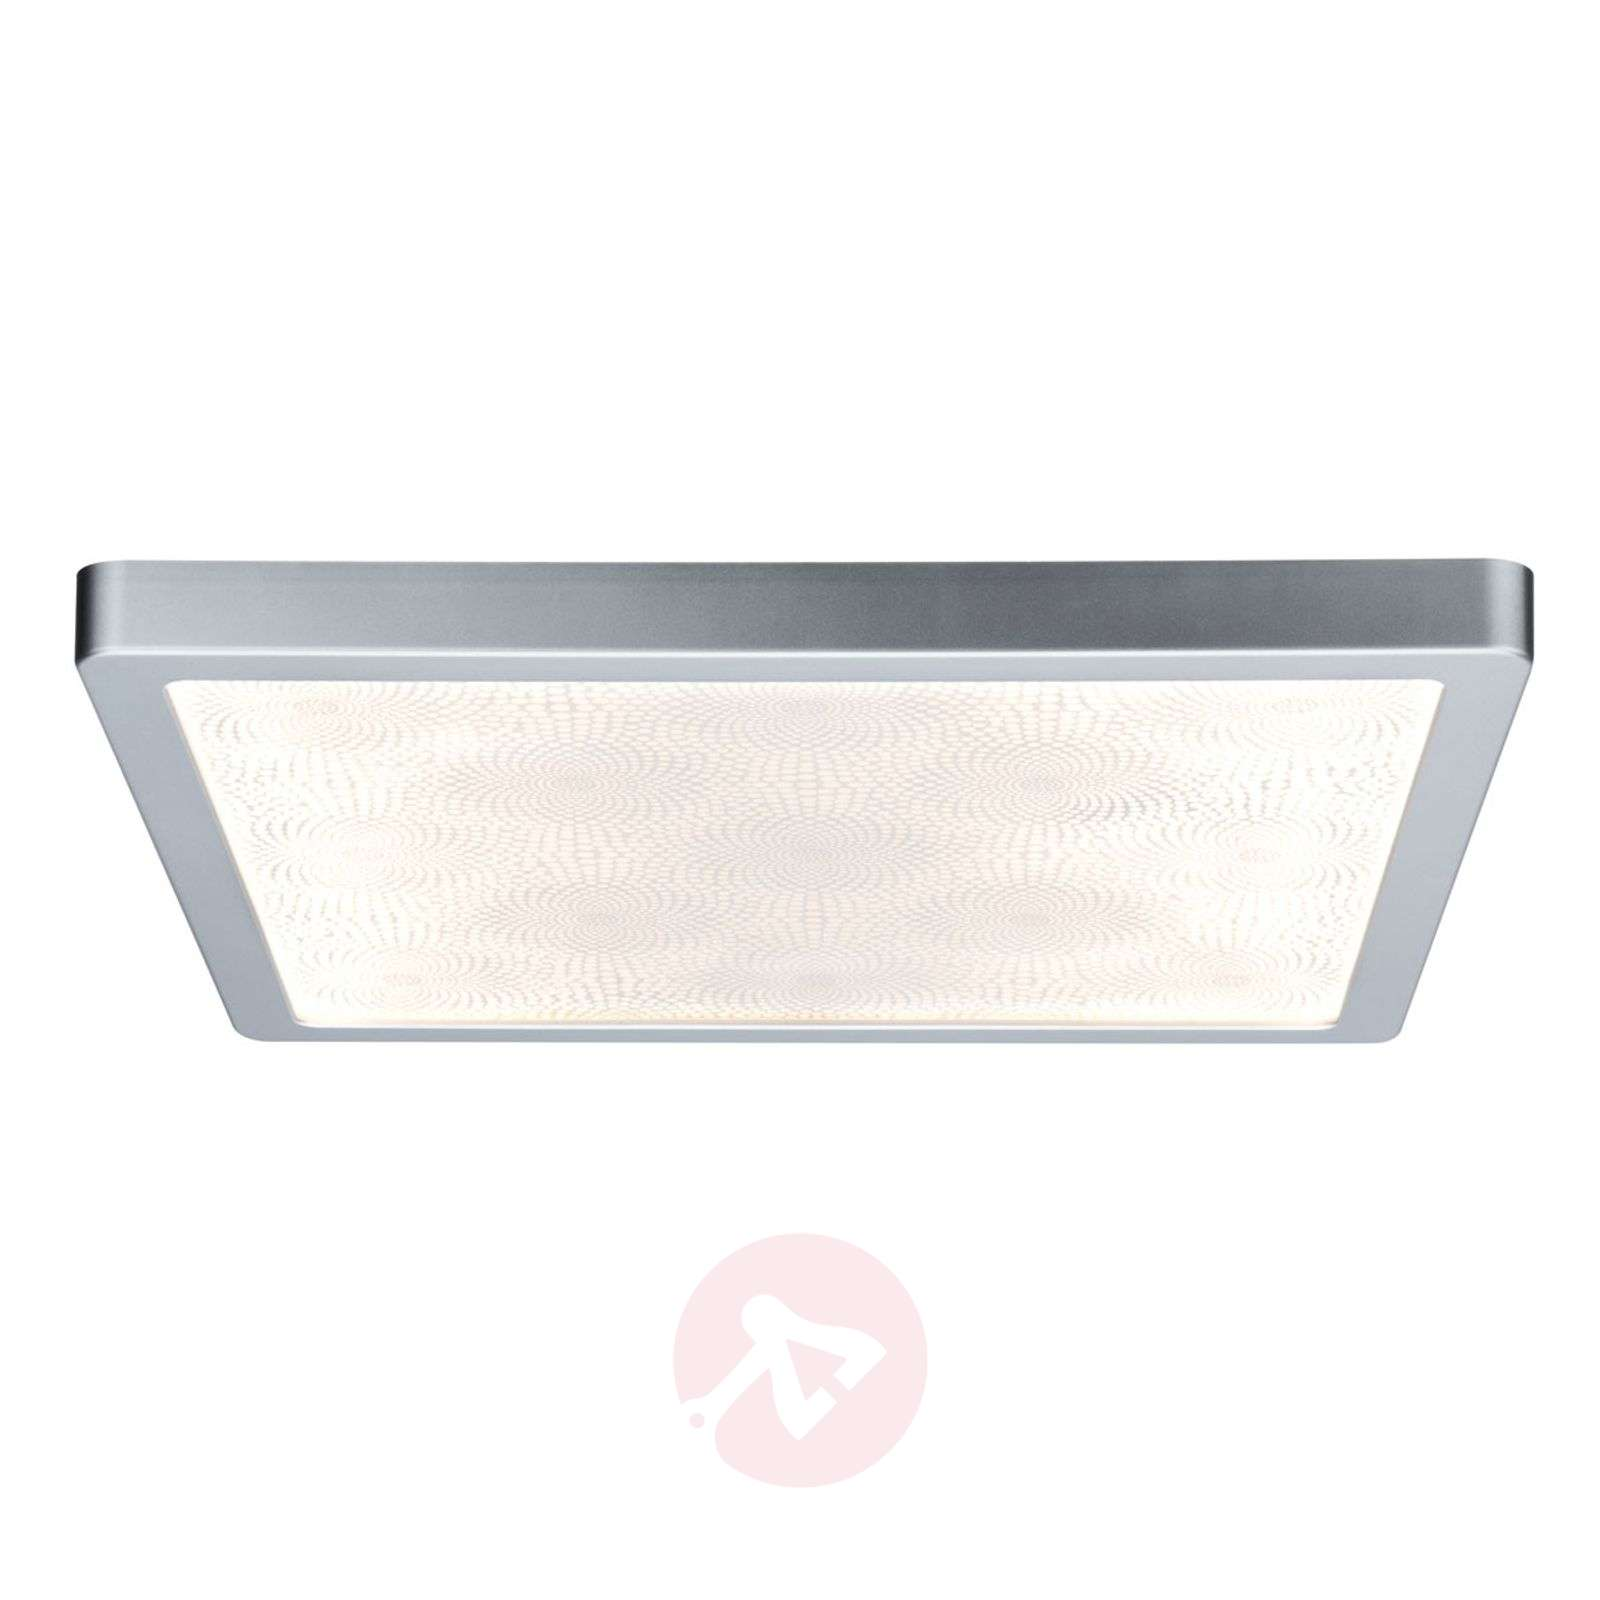 Plafoniere A Led Per Bagno Philips : Acquista plafoniera led quadrata ivy da bagno 20w lampade.it